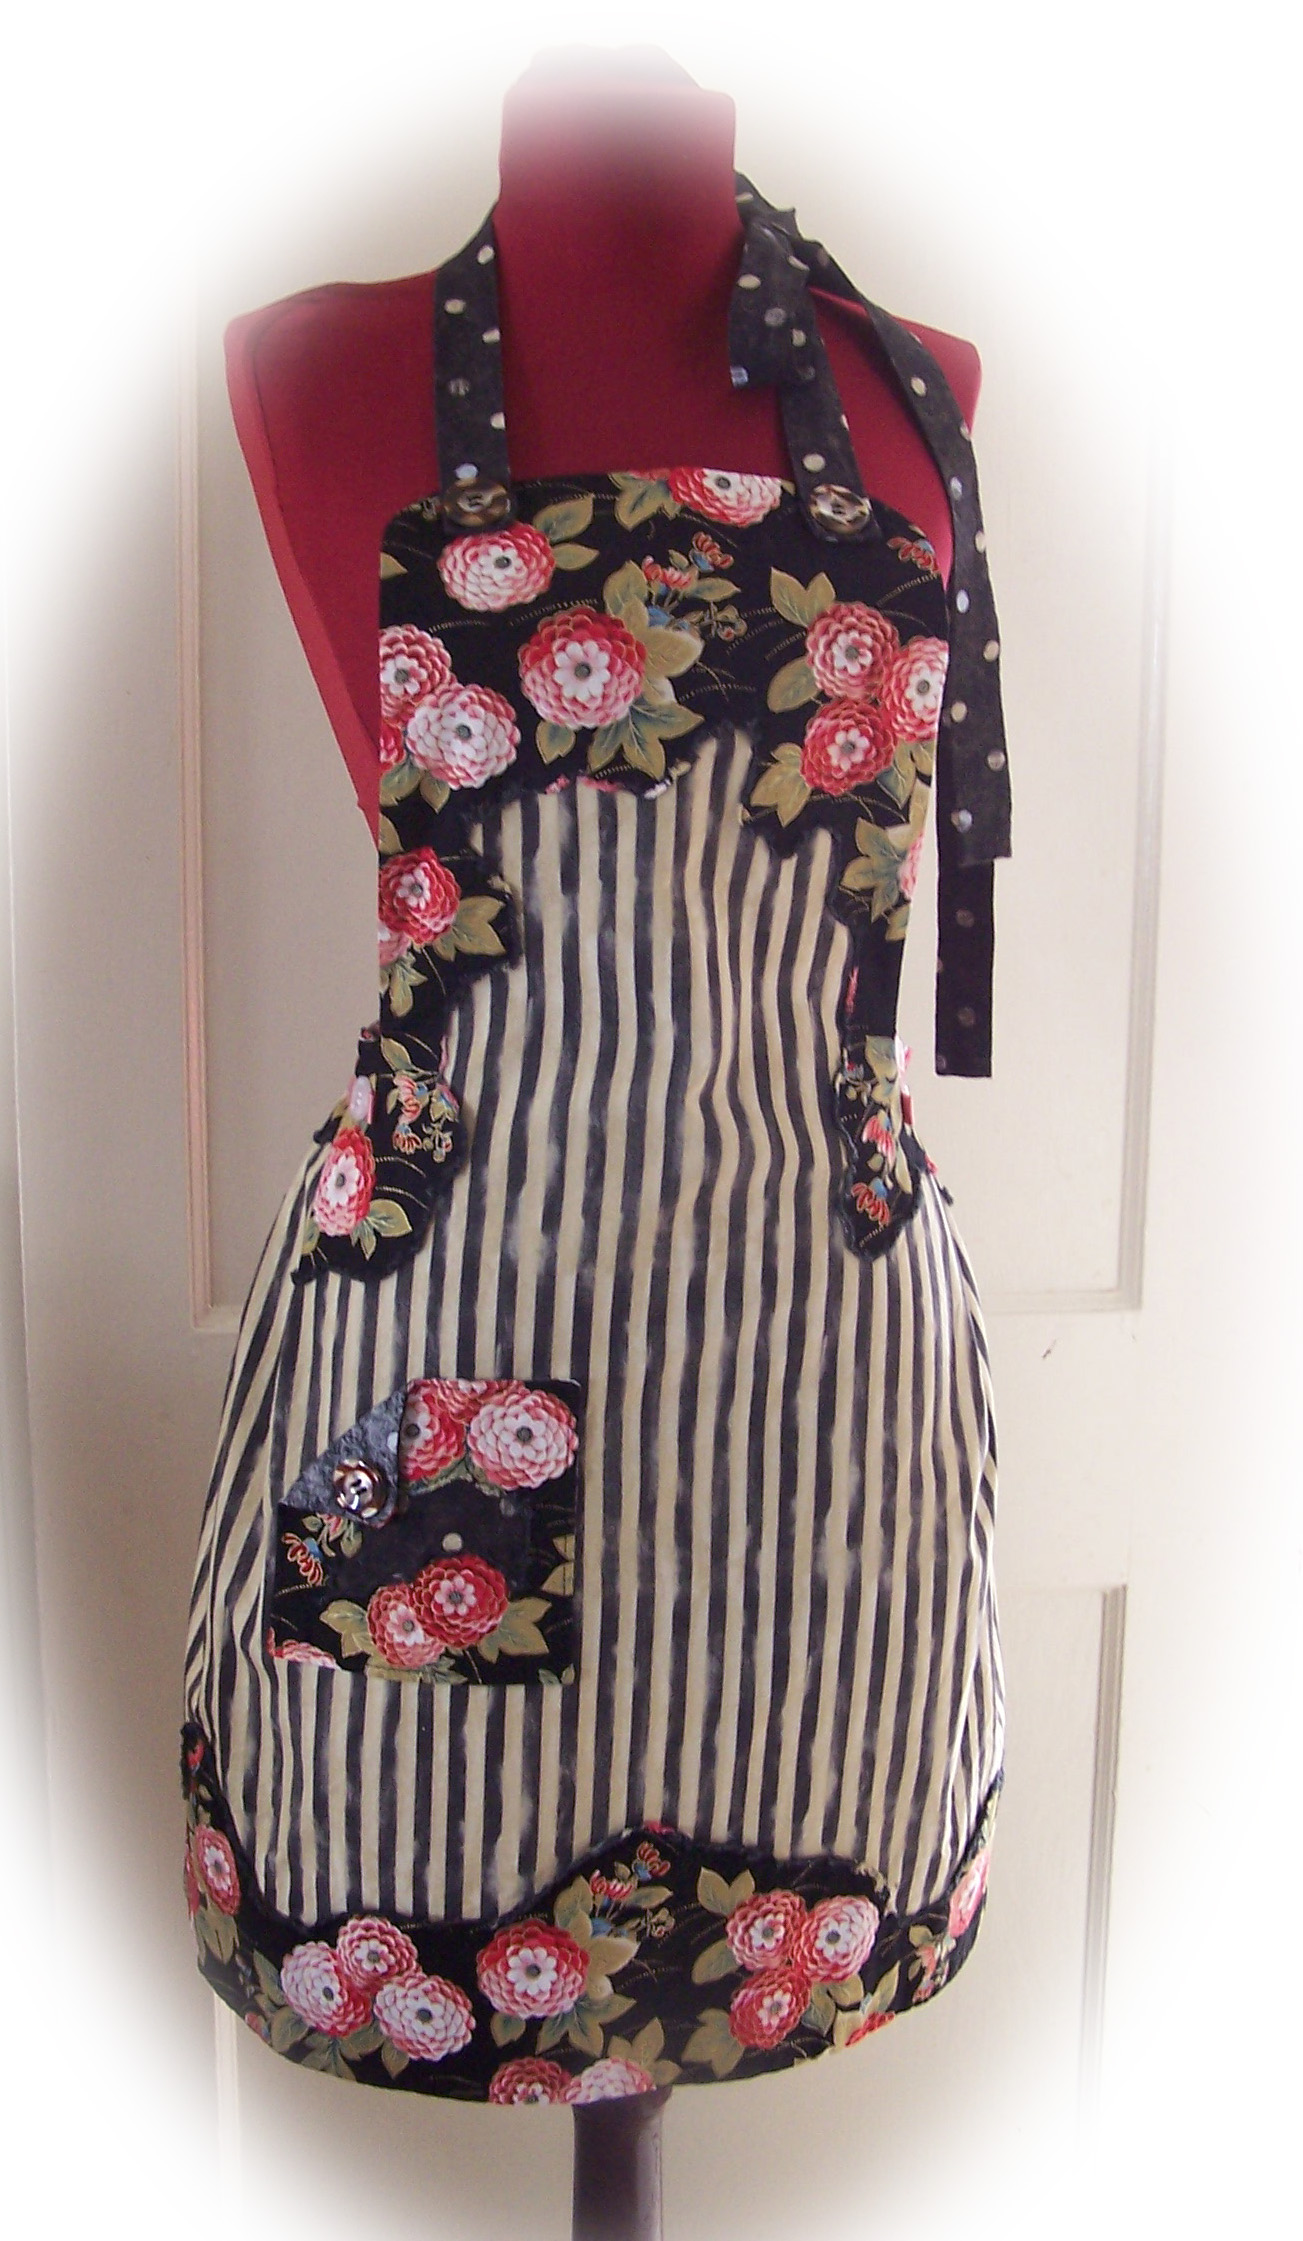 Vintagemodern design challenge flour garden apron sewing projects for Apron designs and kitchen apron styles